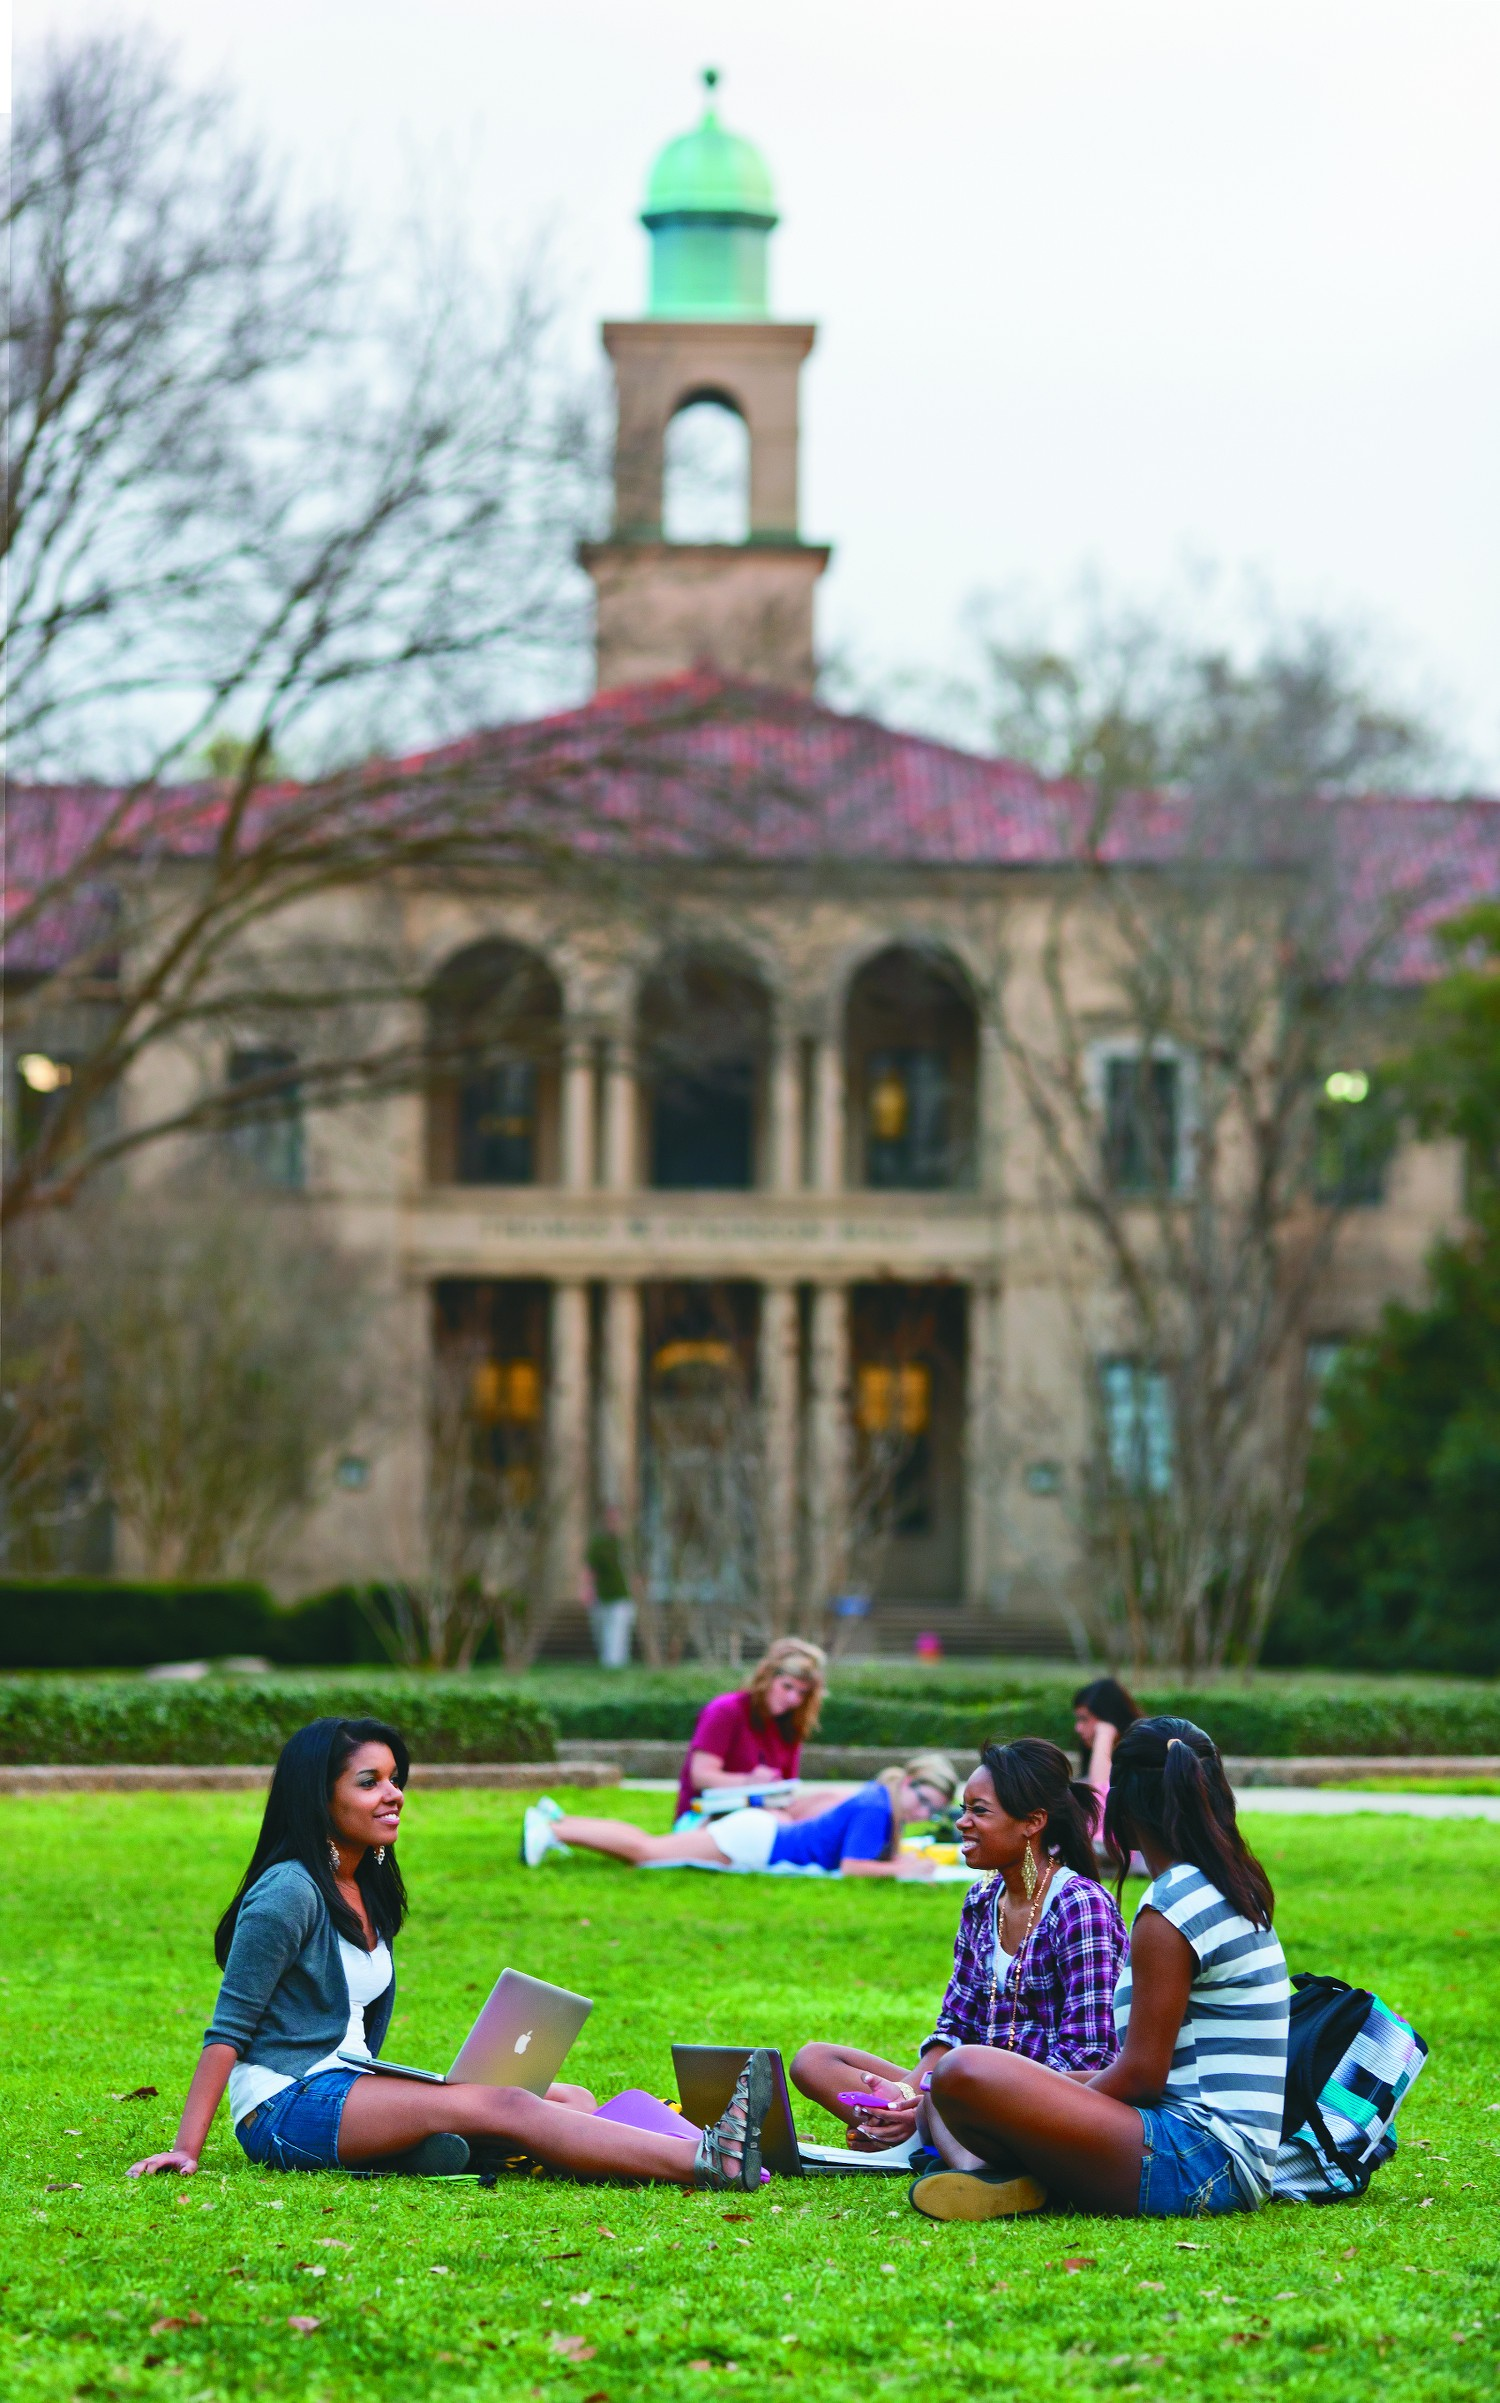 Students studying at The Quad